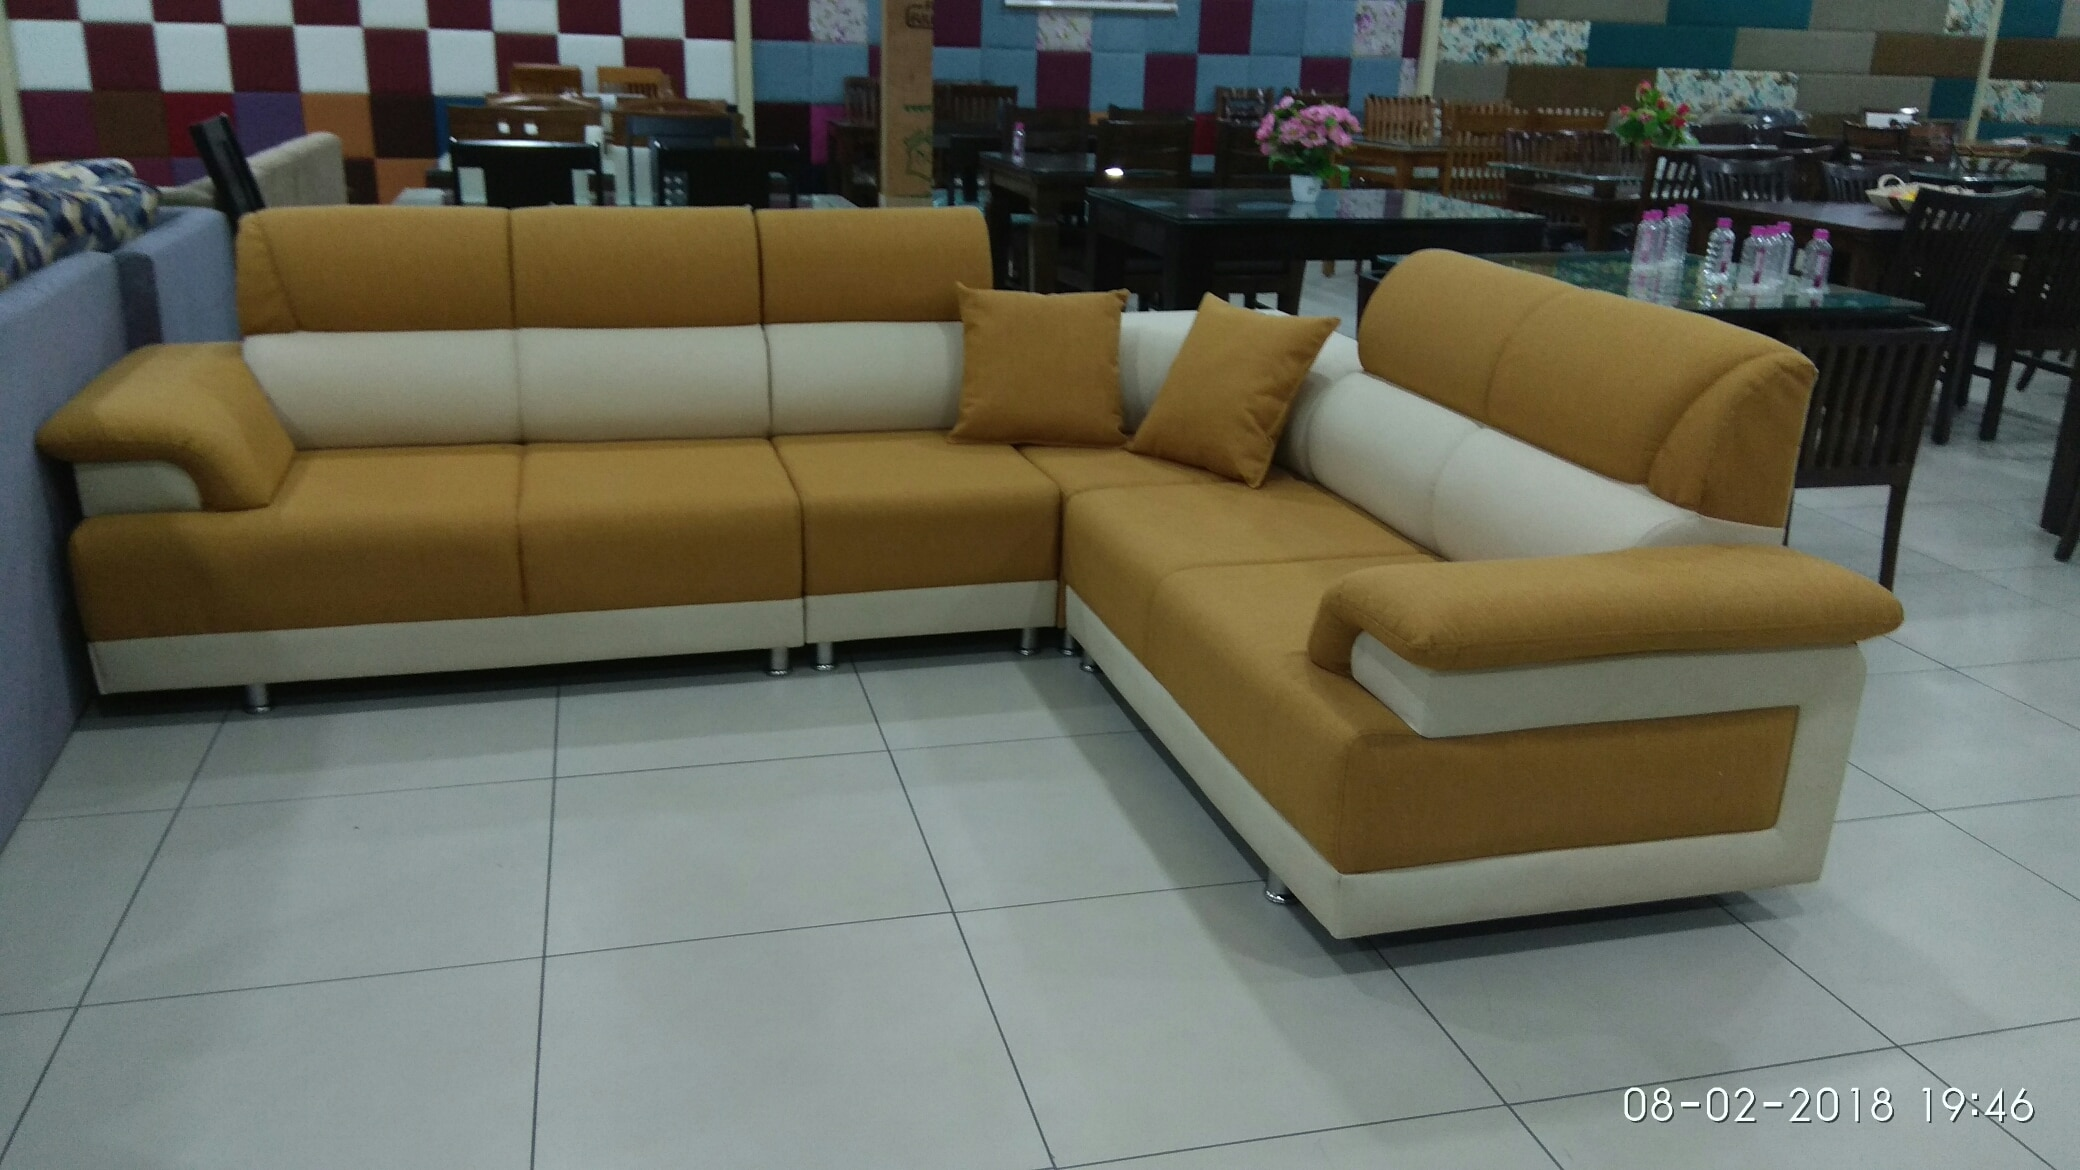 sofa ready display Akshar Furniture in Ahmedabad India